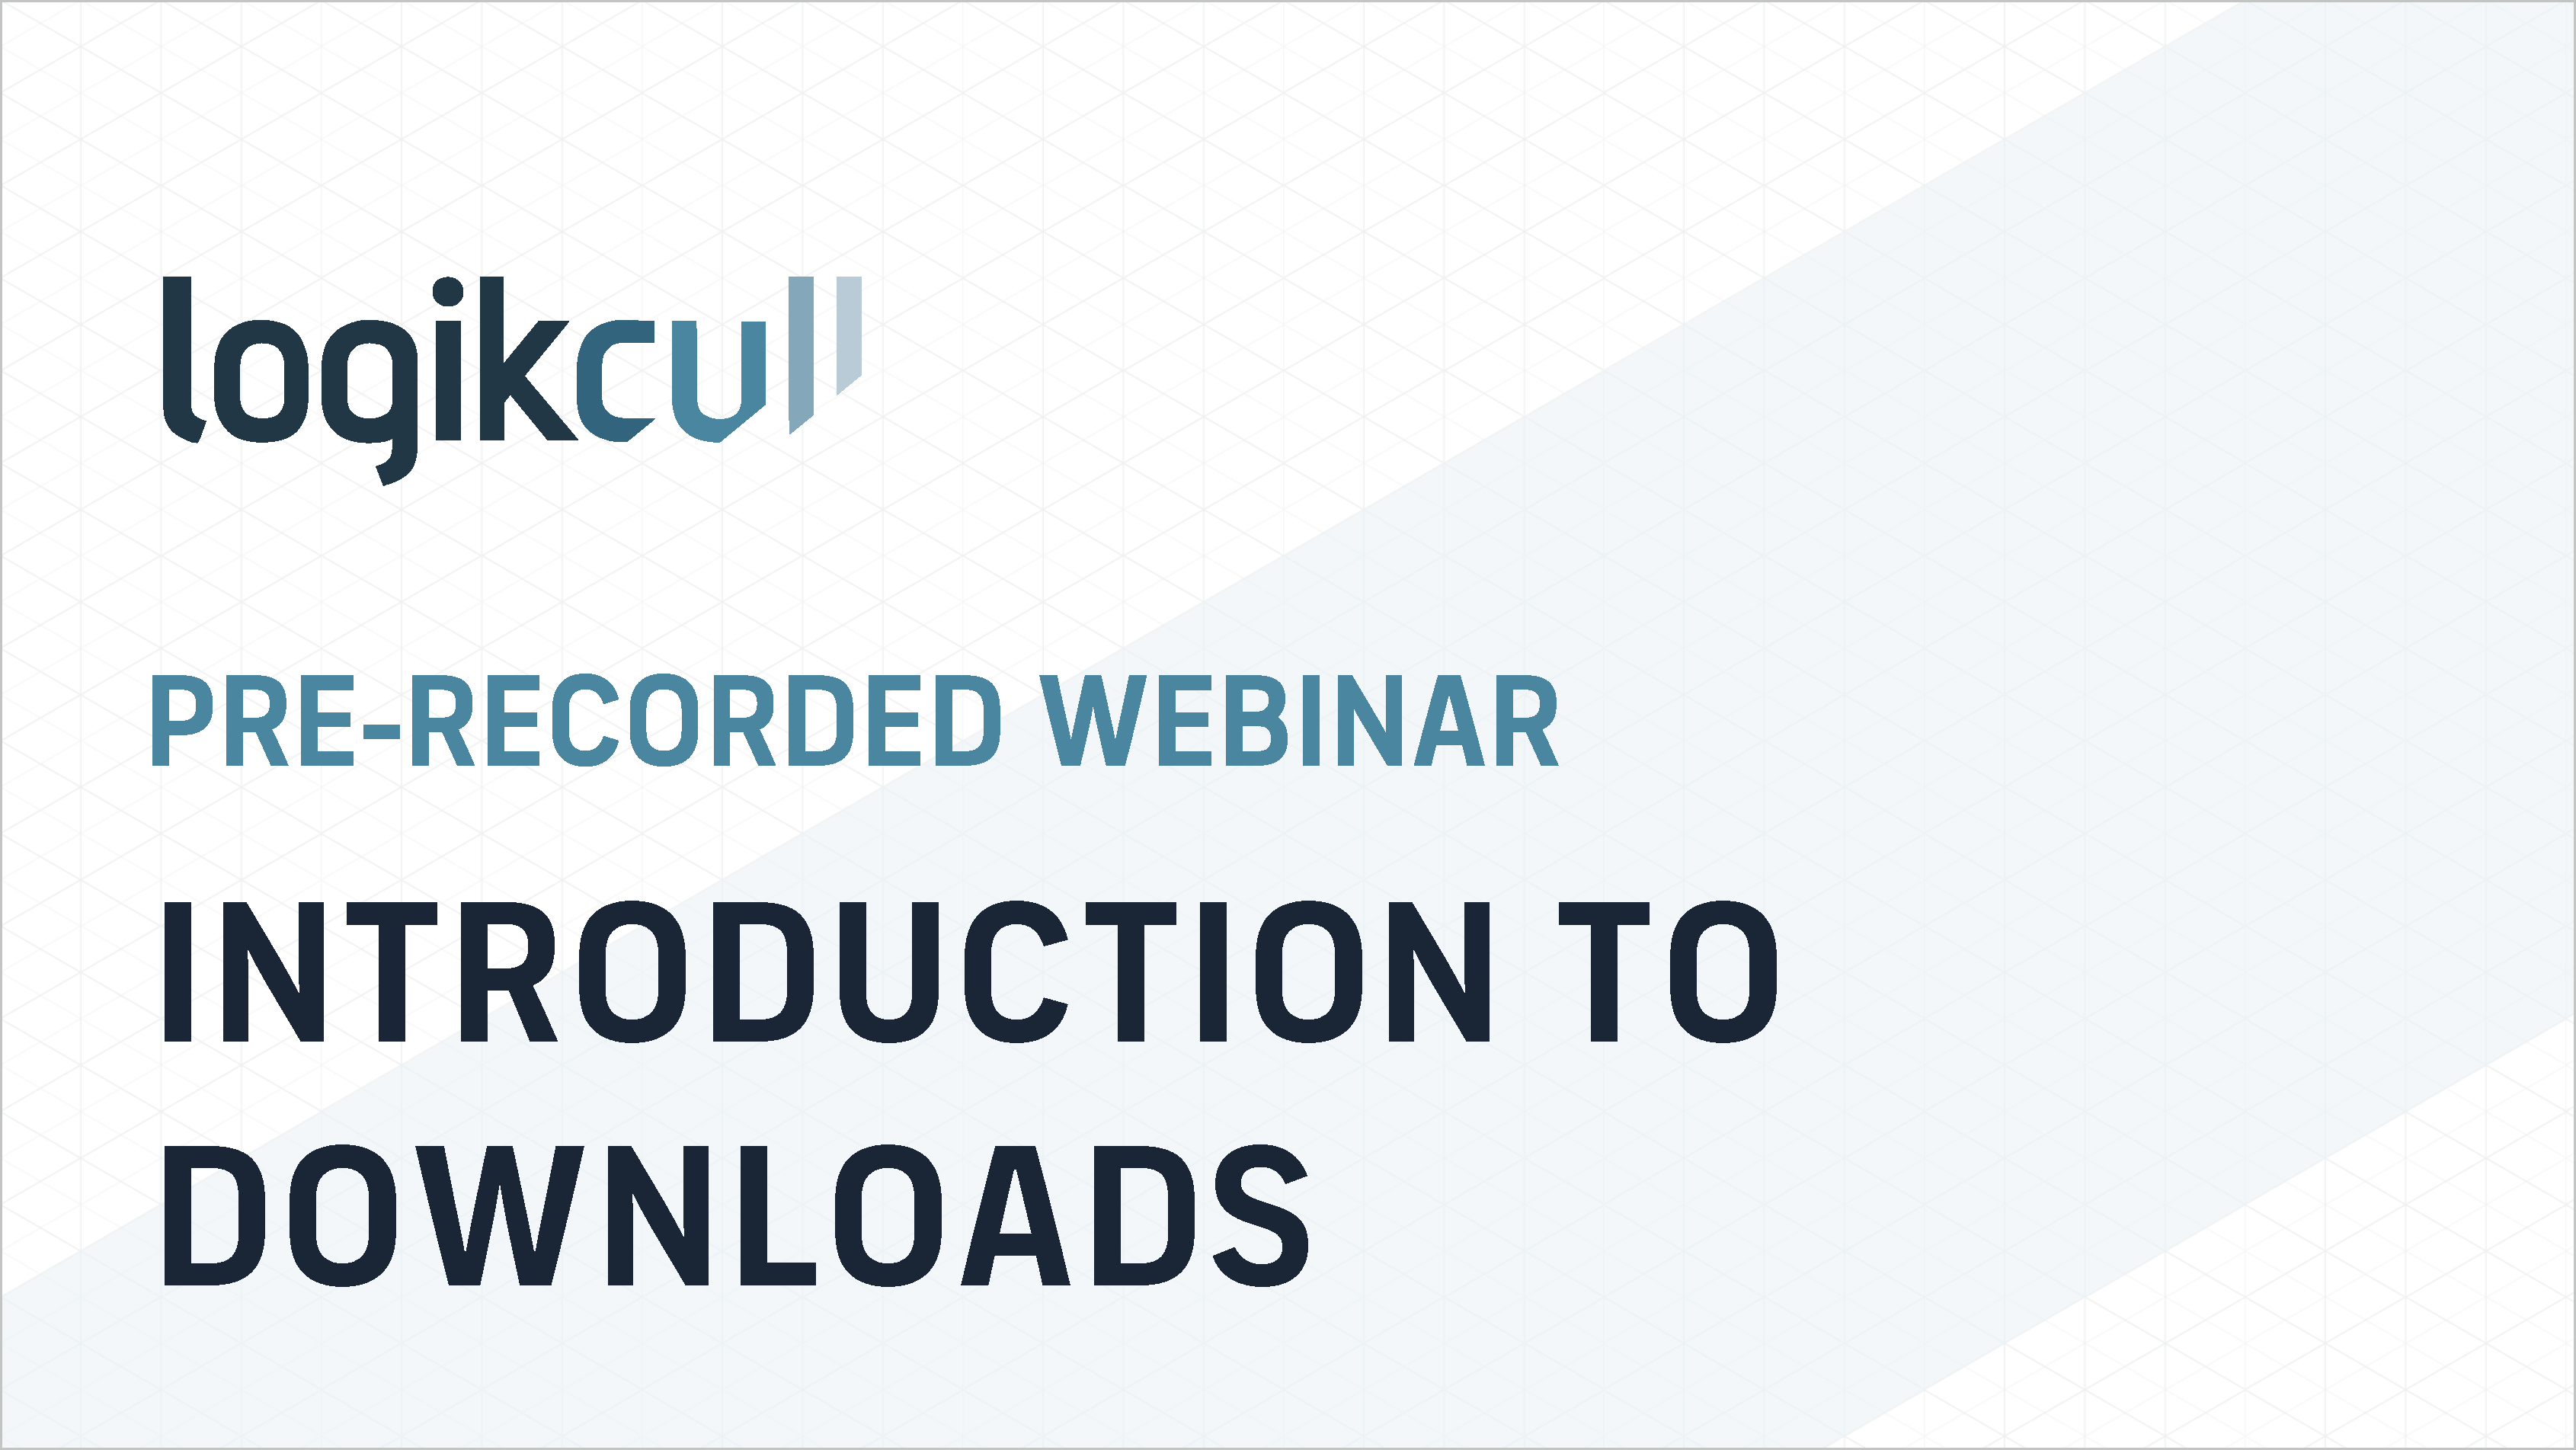 Introduction to Downloads: Pre-Recorded Webinar